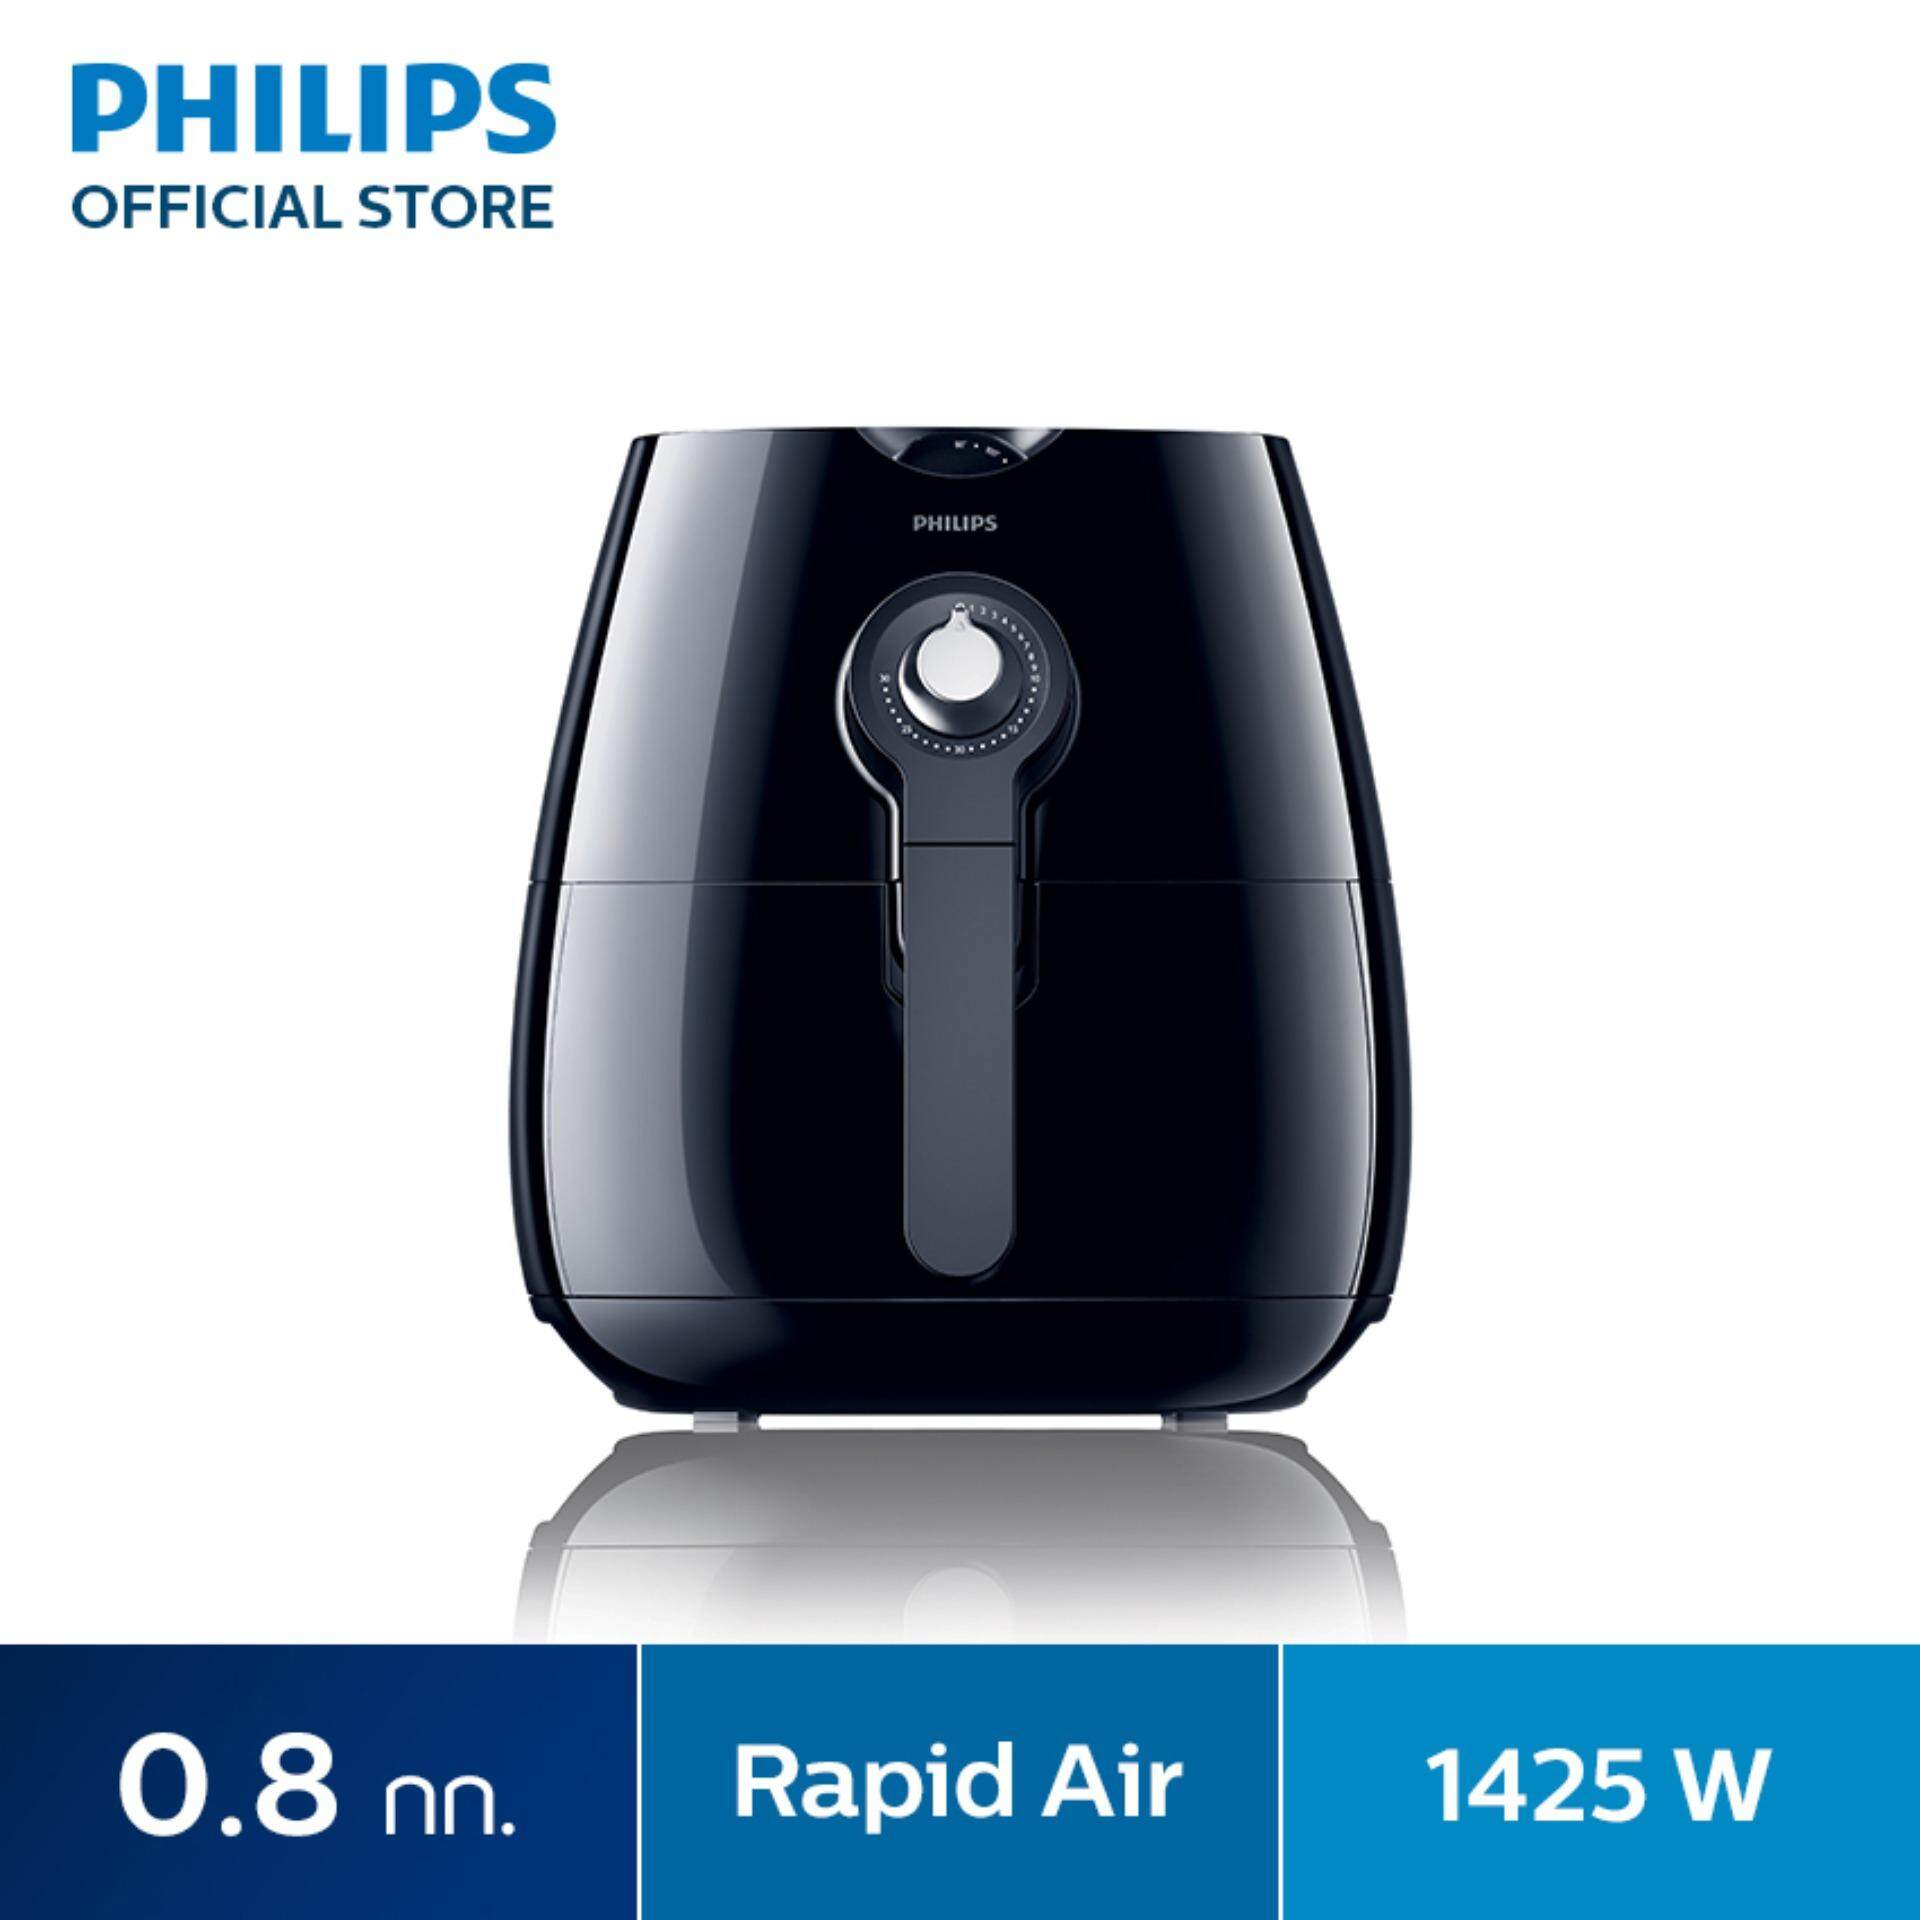 Philips Airfryer หม้อทอดไร้น้ำมัน รุ่น Hd9220/20 - สีดำ By Philips Official Online Store.